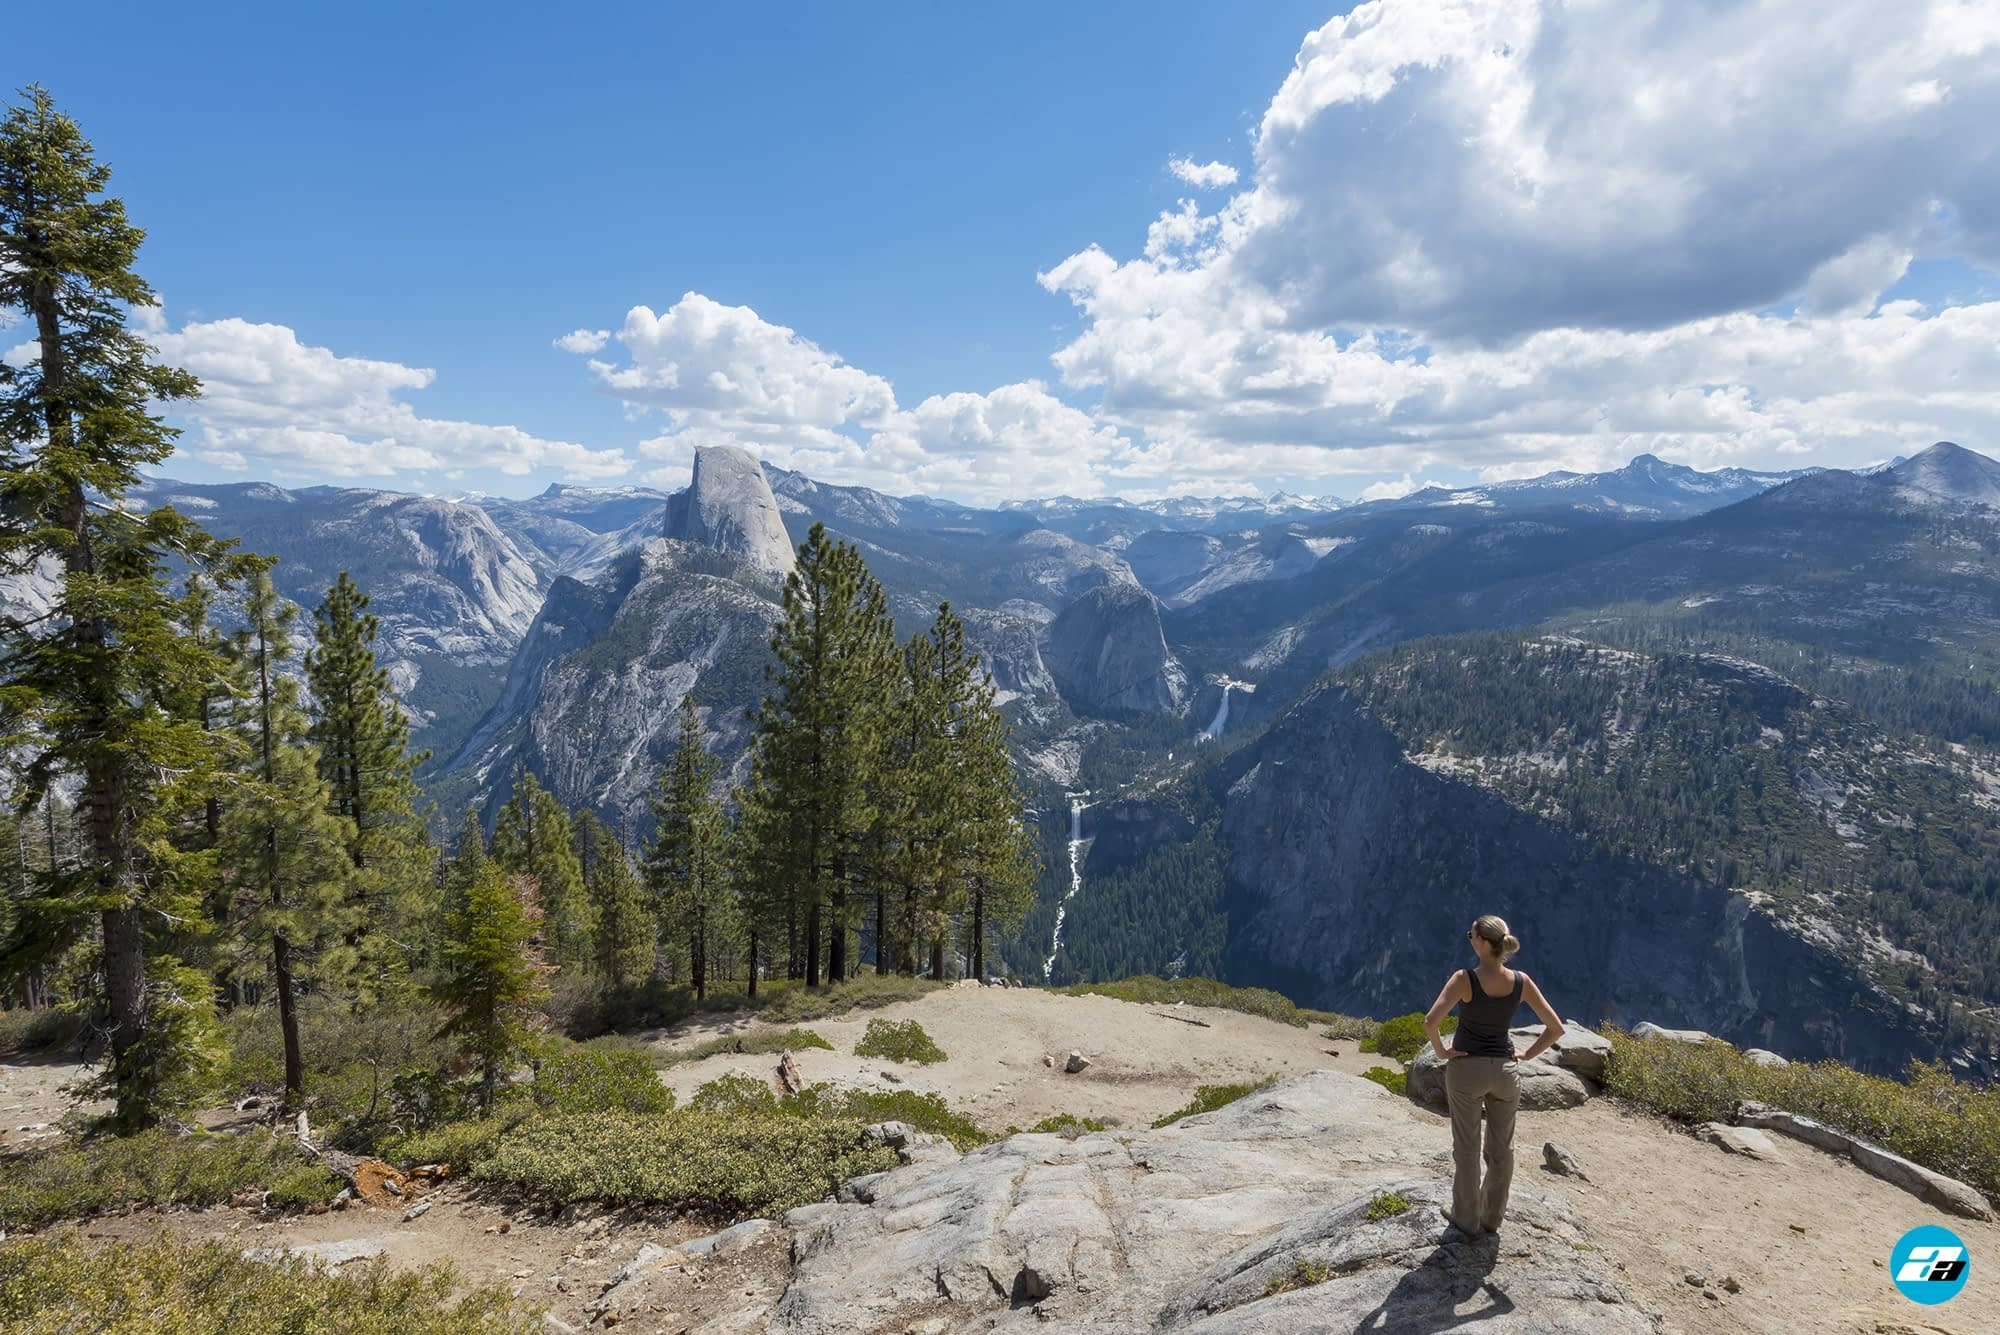 Yosemite National Park, California, USA. Landscape. Explorer. Solitude. Mountain View. Glacier Point. Canyon View.